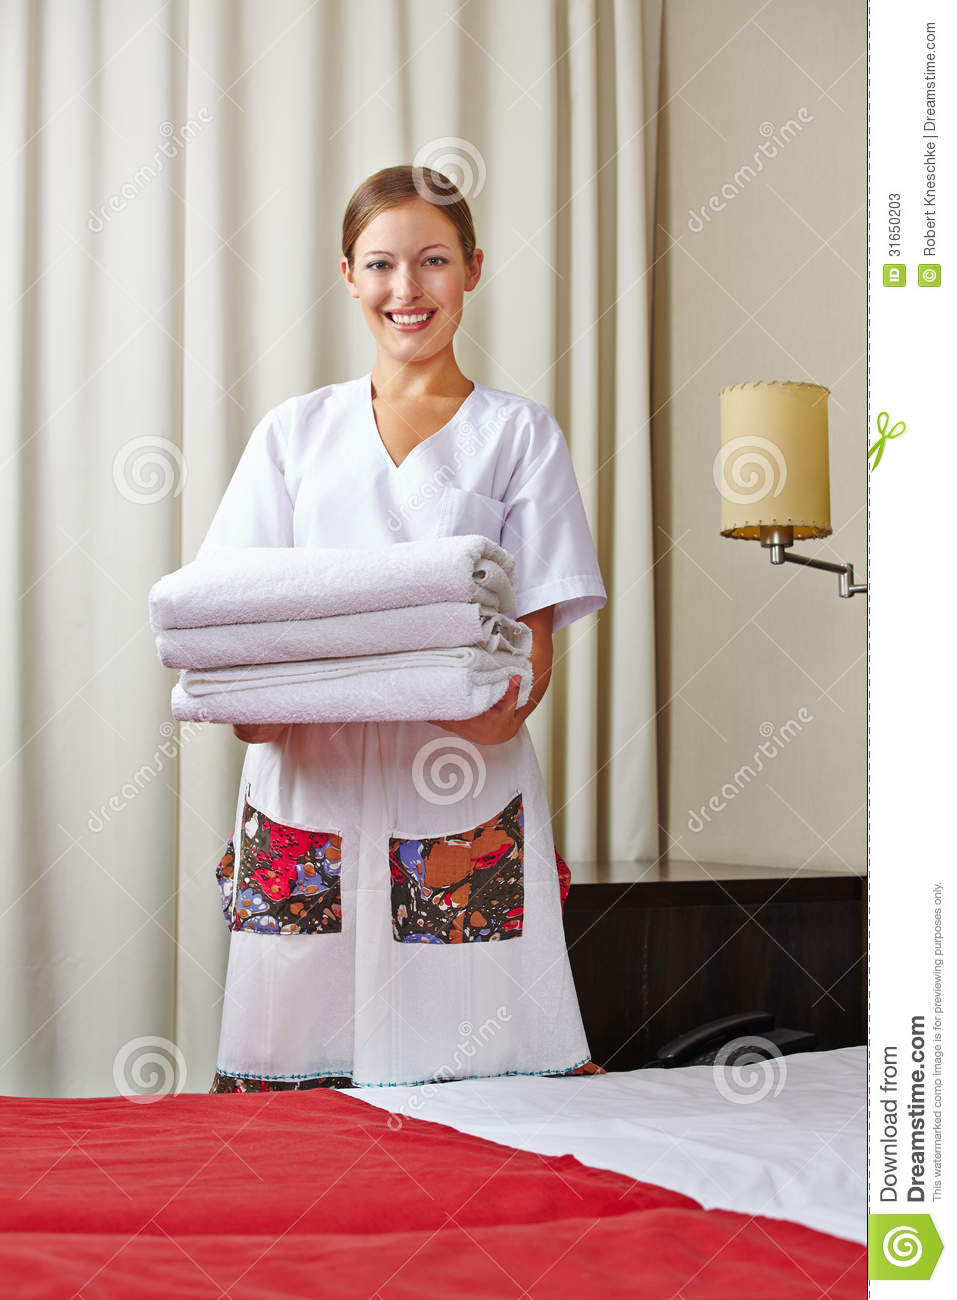 Hotel Maid With Fresh Towels Stock Image Image 31650203